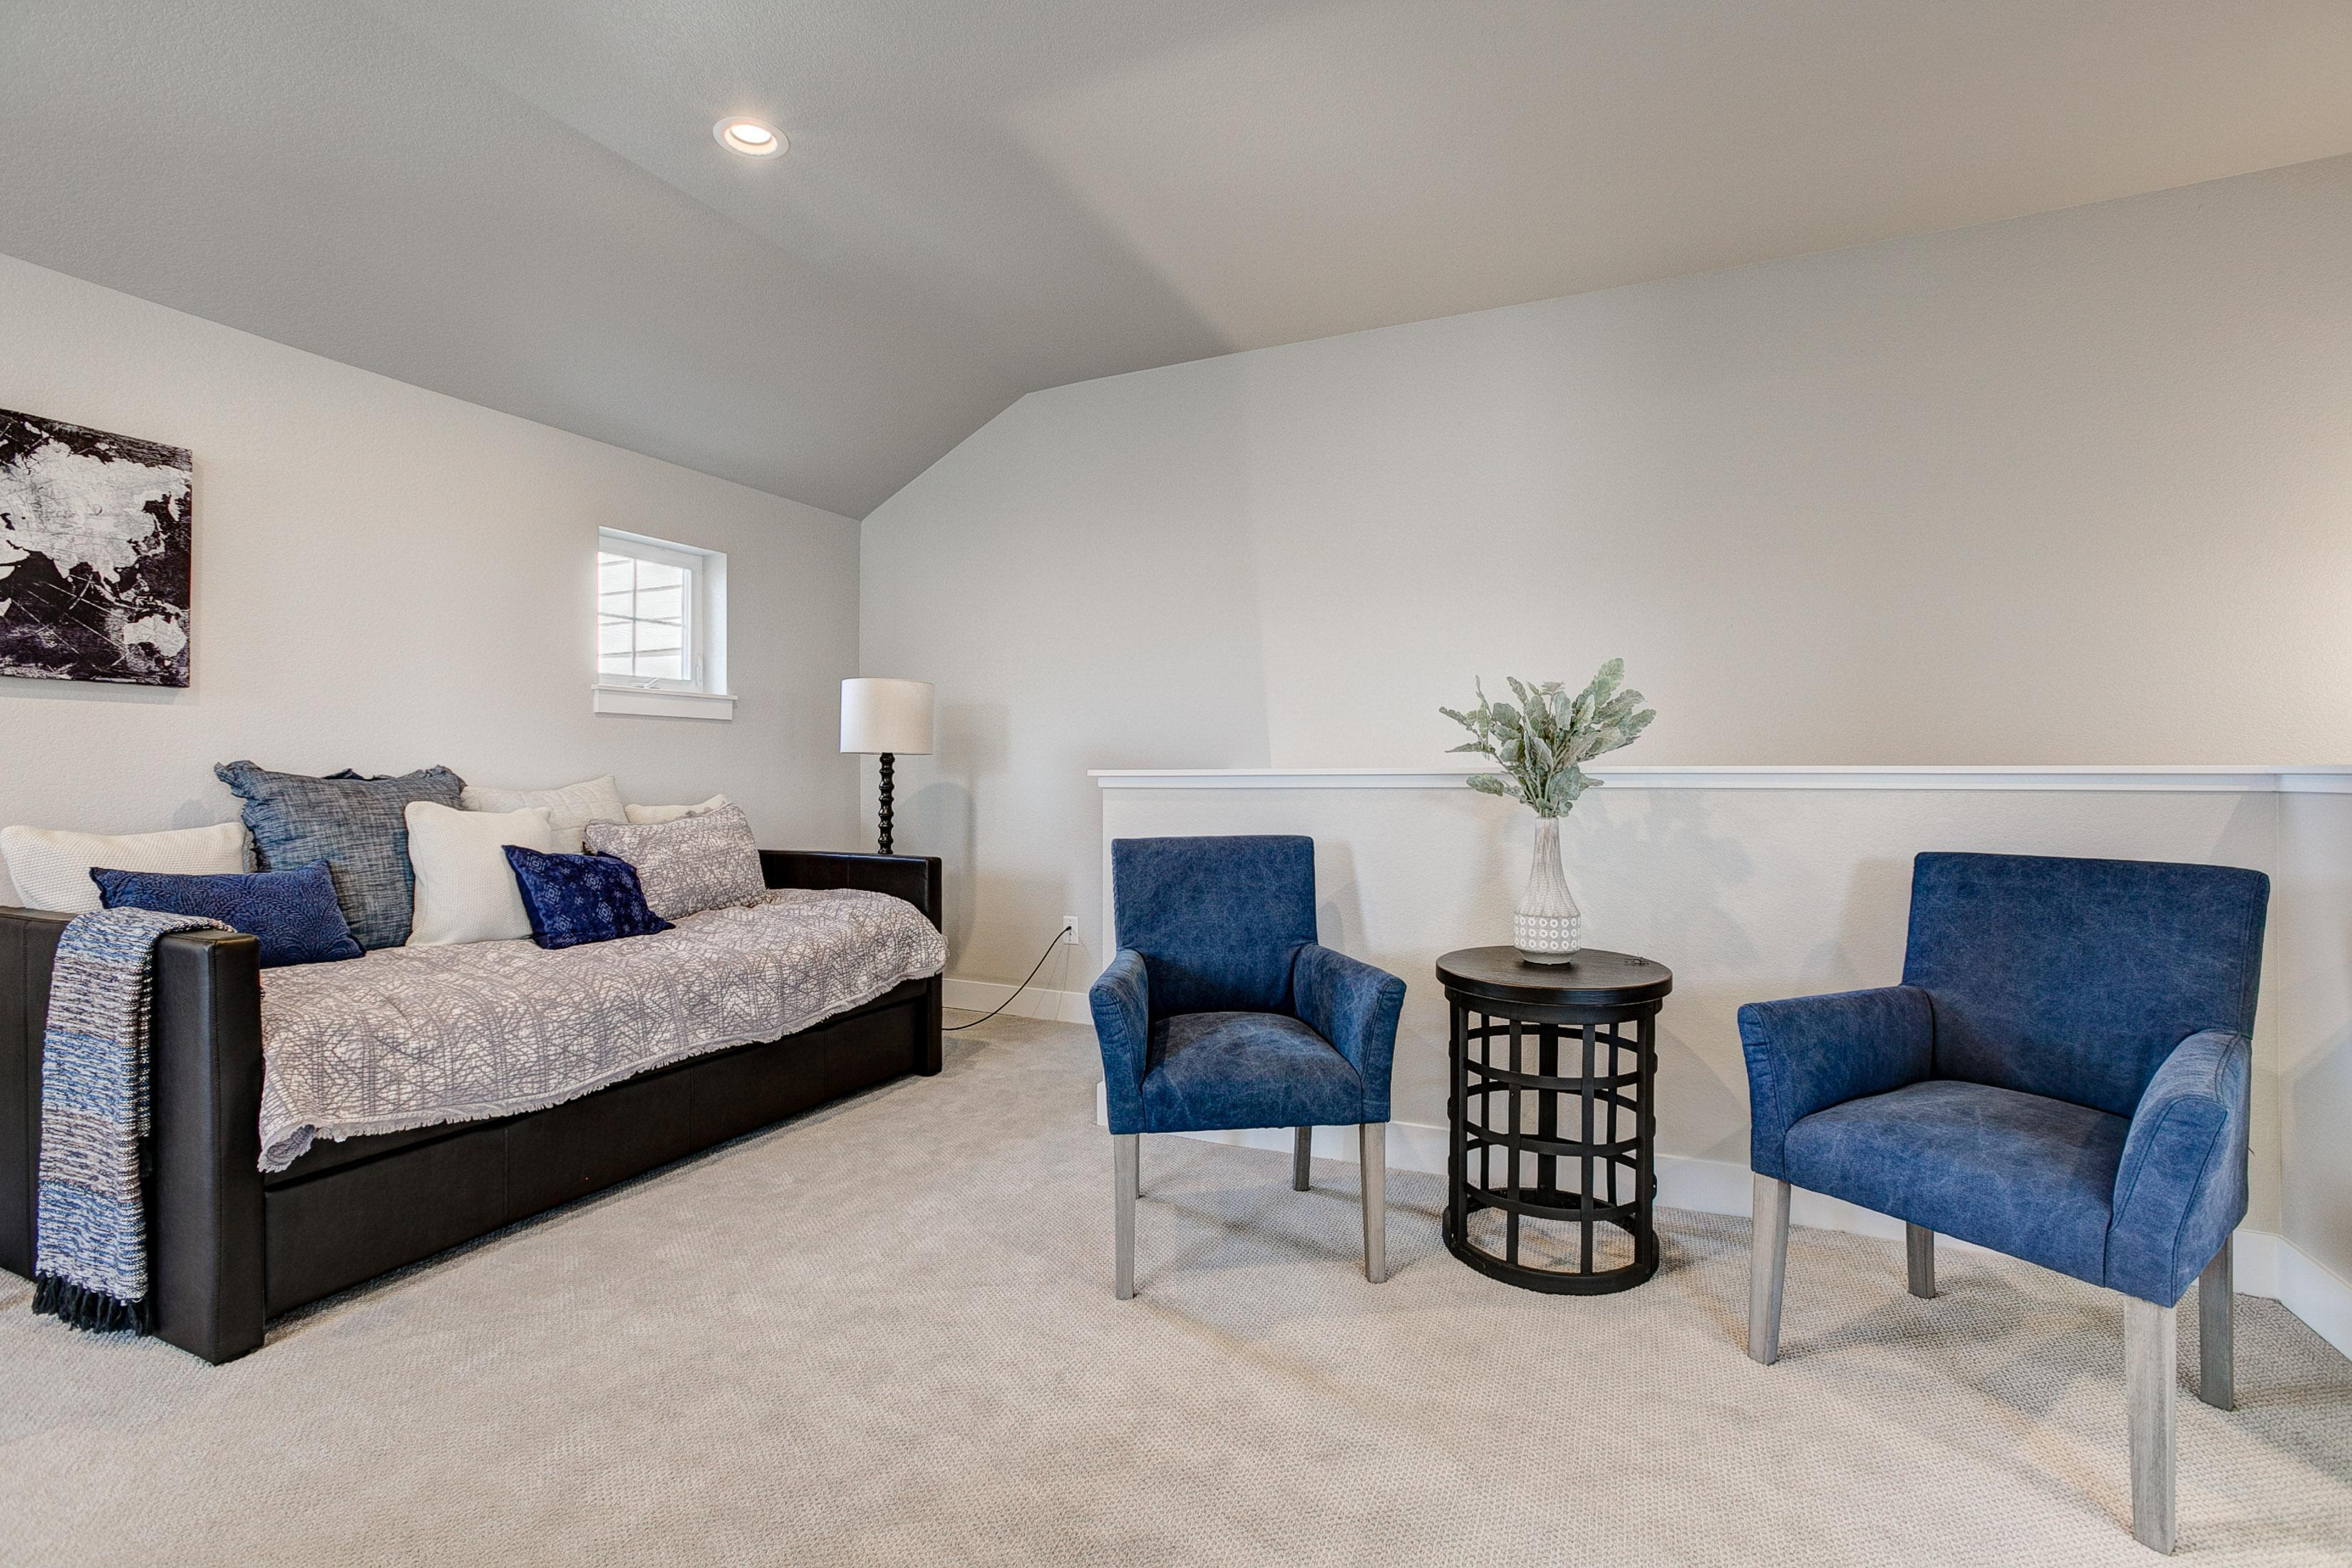 Bedroom featured in the Addison By Landmark Homes  in Fort Collins-Loveland, CO